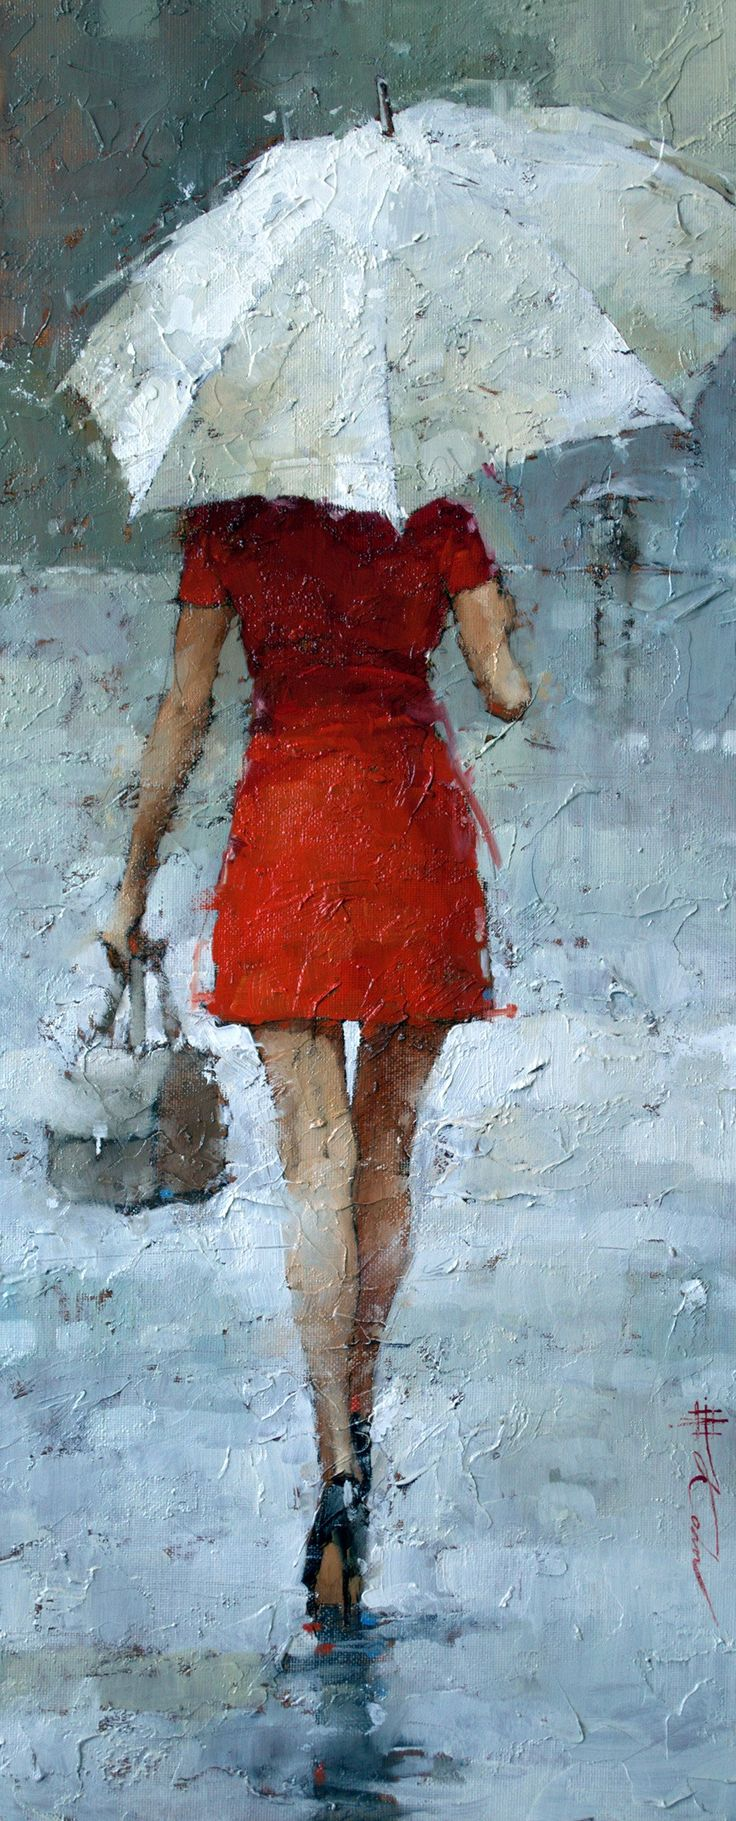 """Vintage Chanel, series #63, Oil, 24"""" x 10"""", Andre Kohn  www.andrekohnfineart.com BTW, FYI, FREE Gift Here: http://www.universalthroughput.com/site2/  also, check out http://jeremy-aiyadurai.pixels.com"""